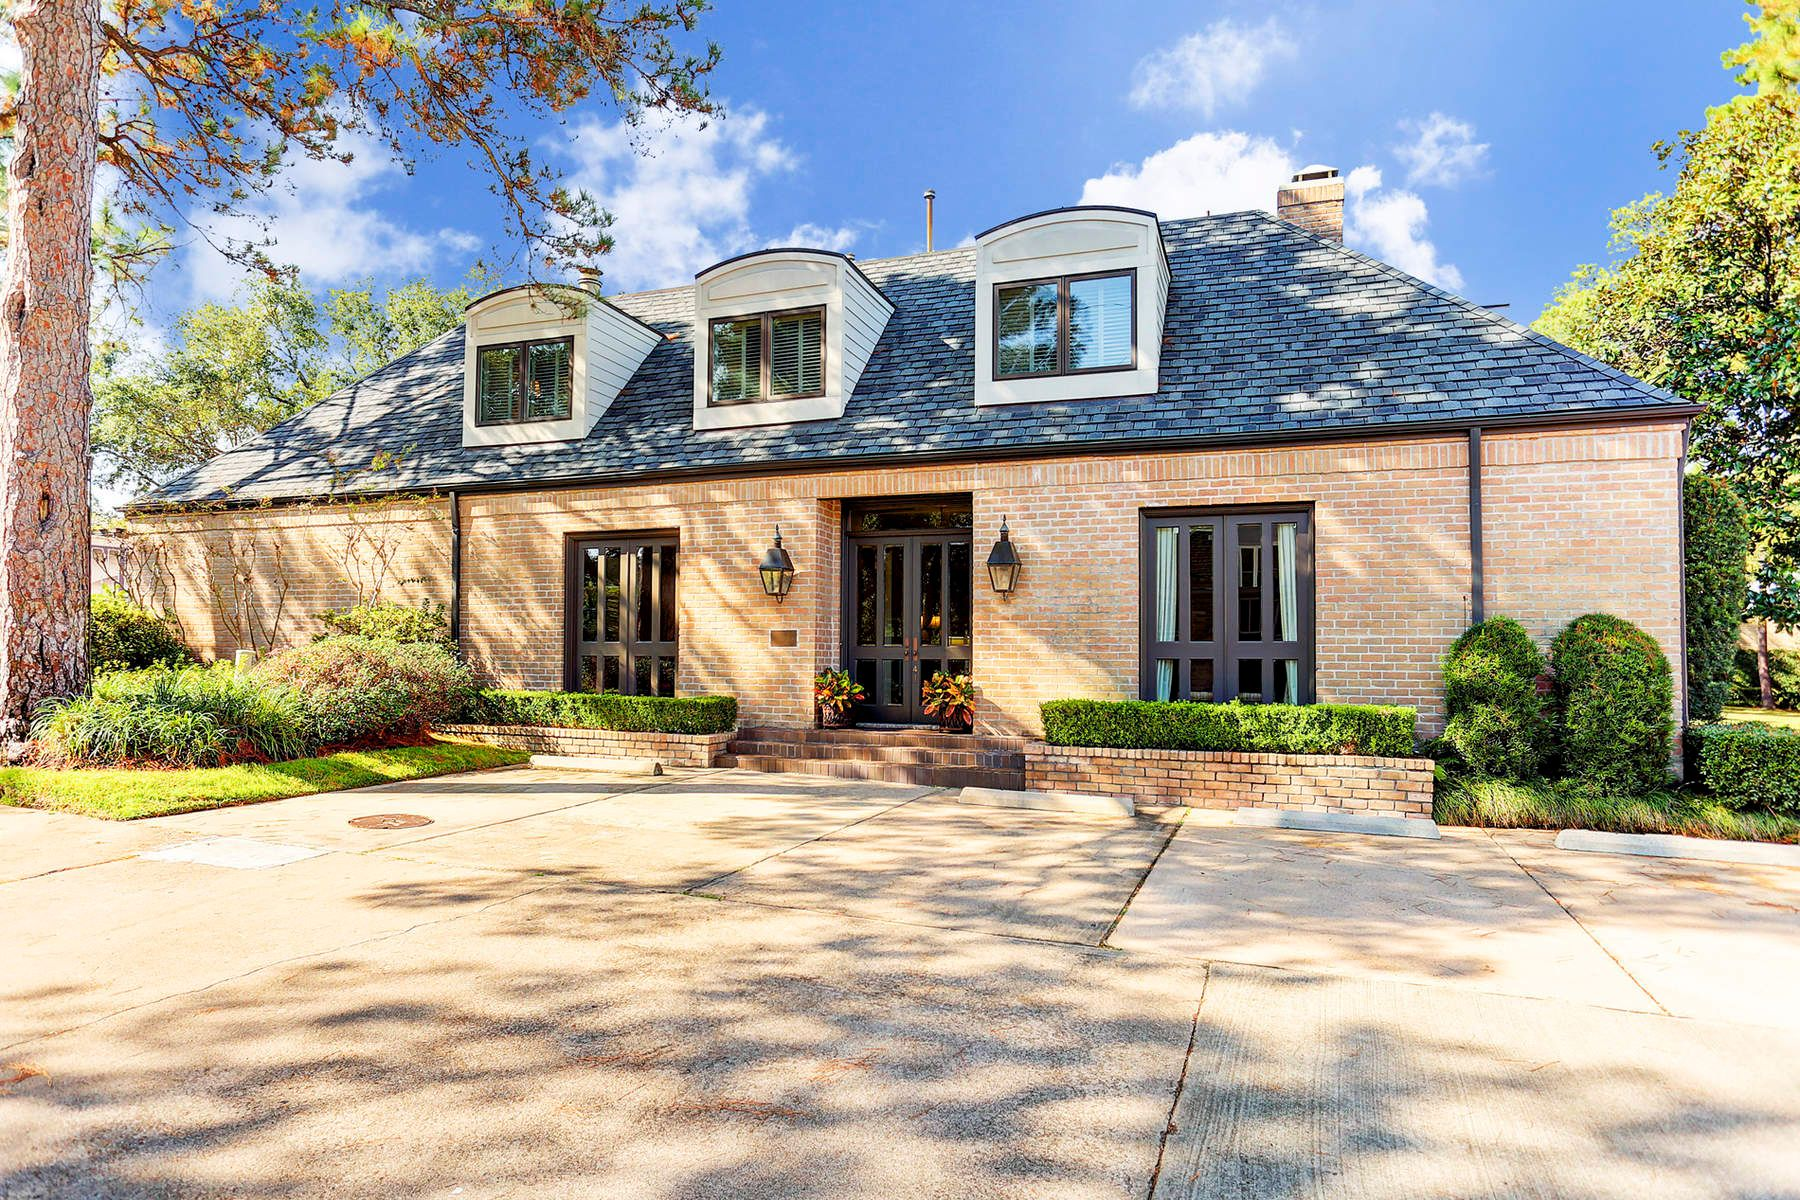 Single Family Home for Sale at 10 South Briar Hollow Lane 10 South Briar Hollow Lane Unit 41, Houston, Texas, 77027 United States